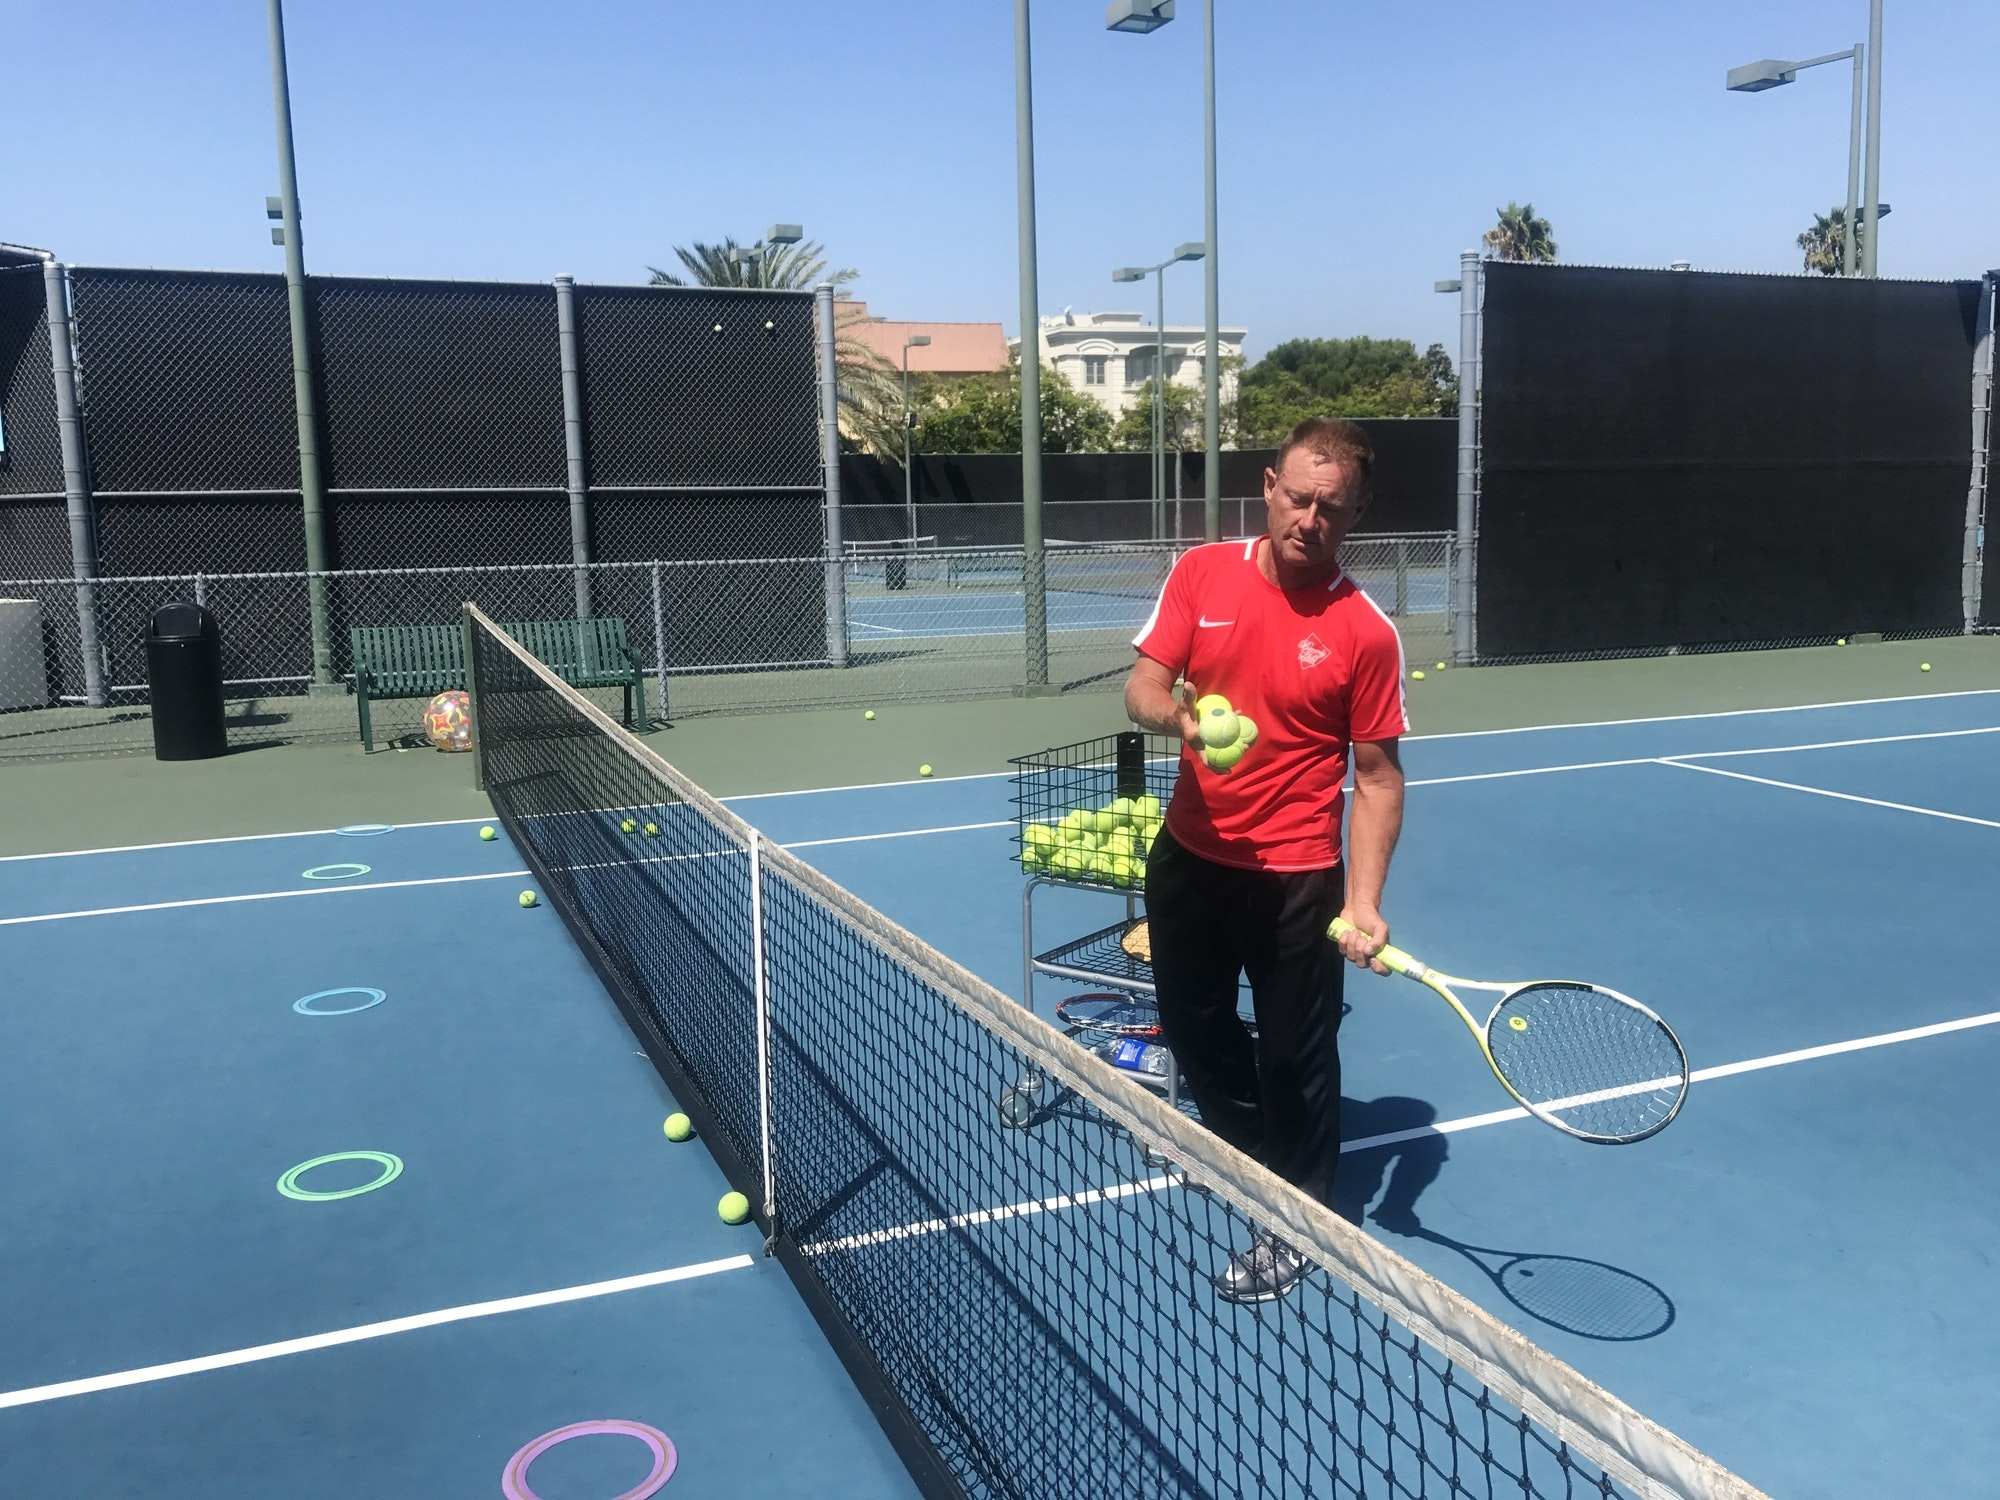 Scott H. teaches tennis lessons in Claremont, CA